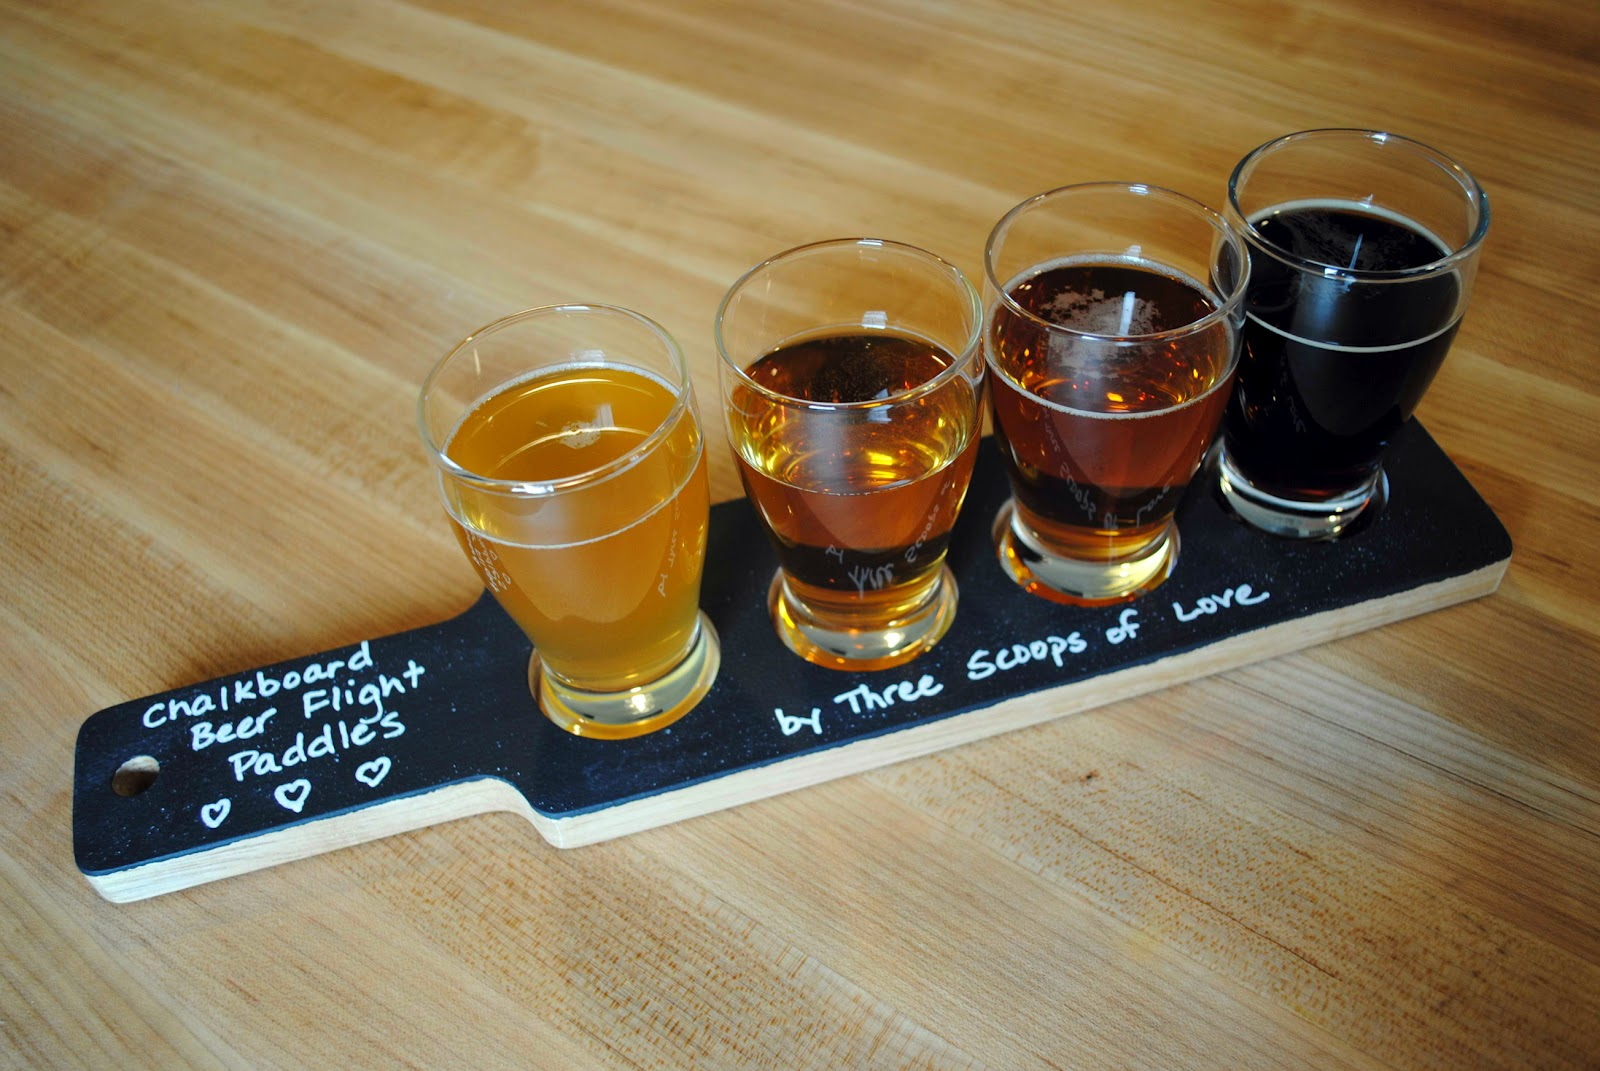 chalkboard beer flight paddles